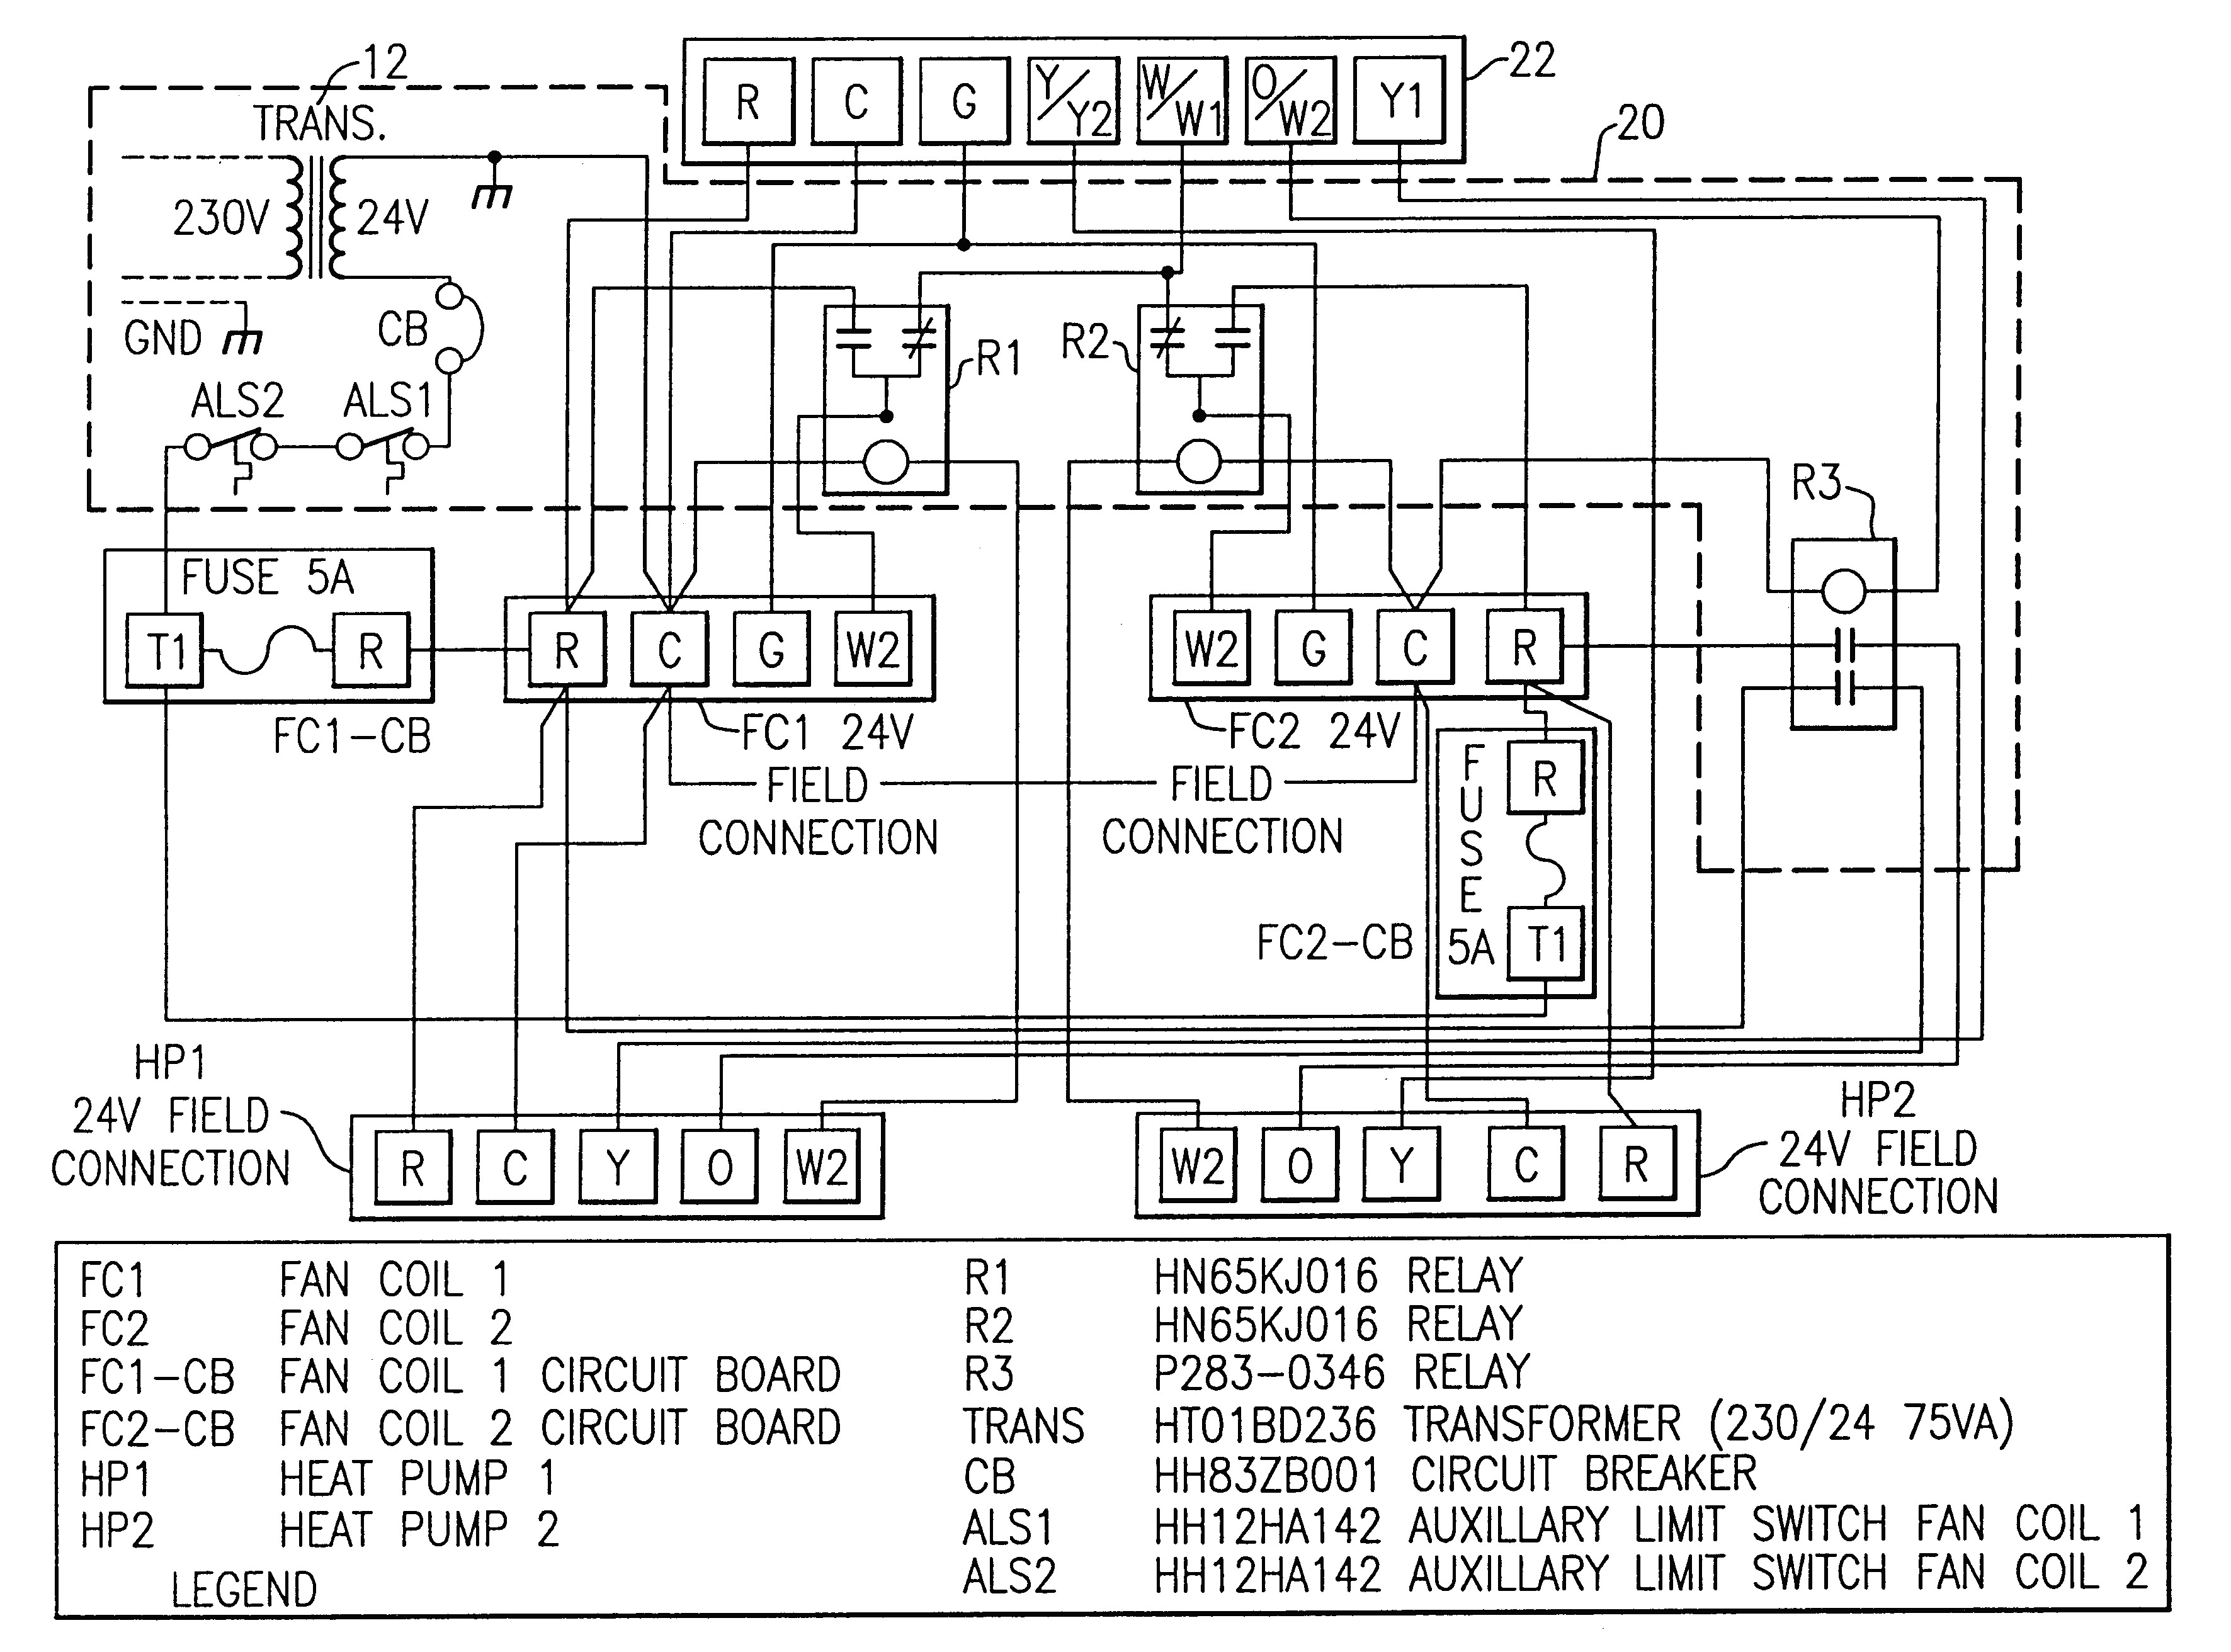 Carrier Heat Pump Wiring Diagram Old Carrier Wiring Diagram Wiring Wiring Diagrams Instructions Of Carrier Heat Pump Wiring Diagram